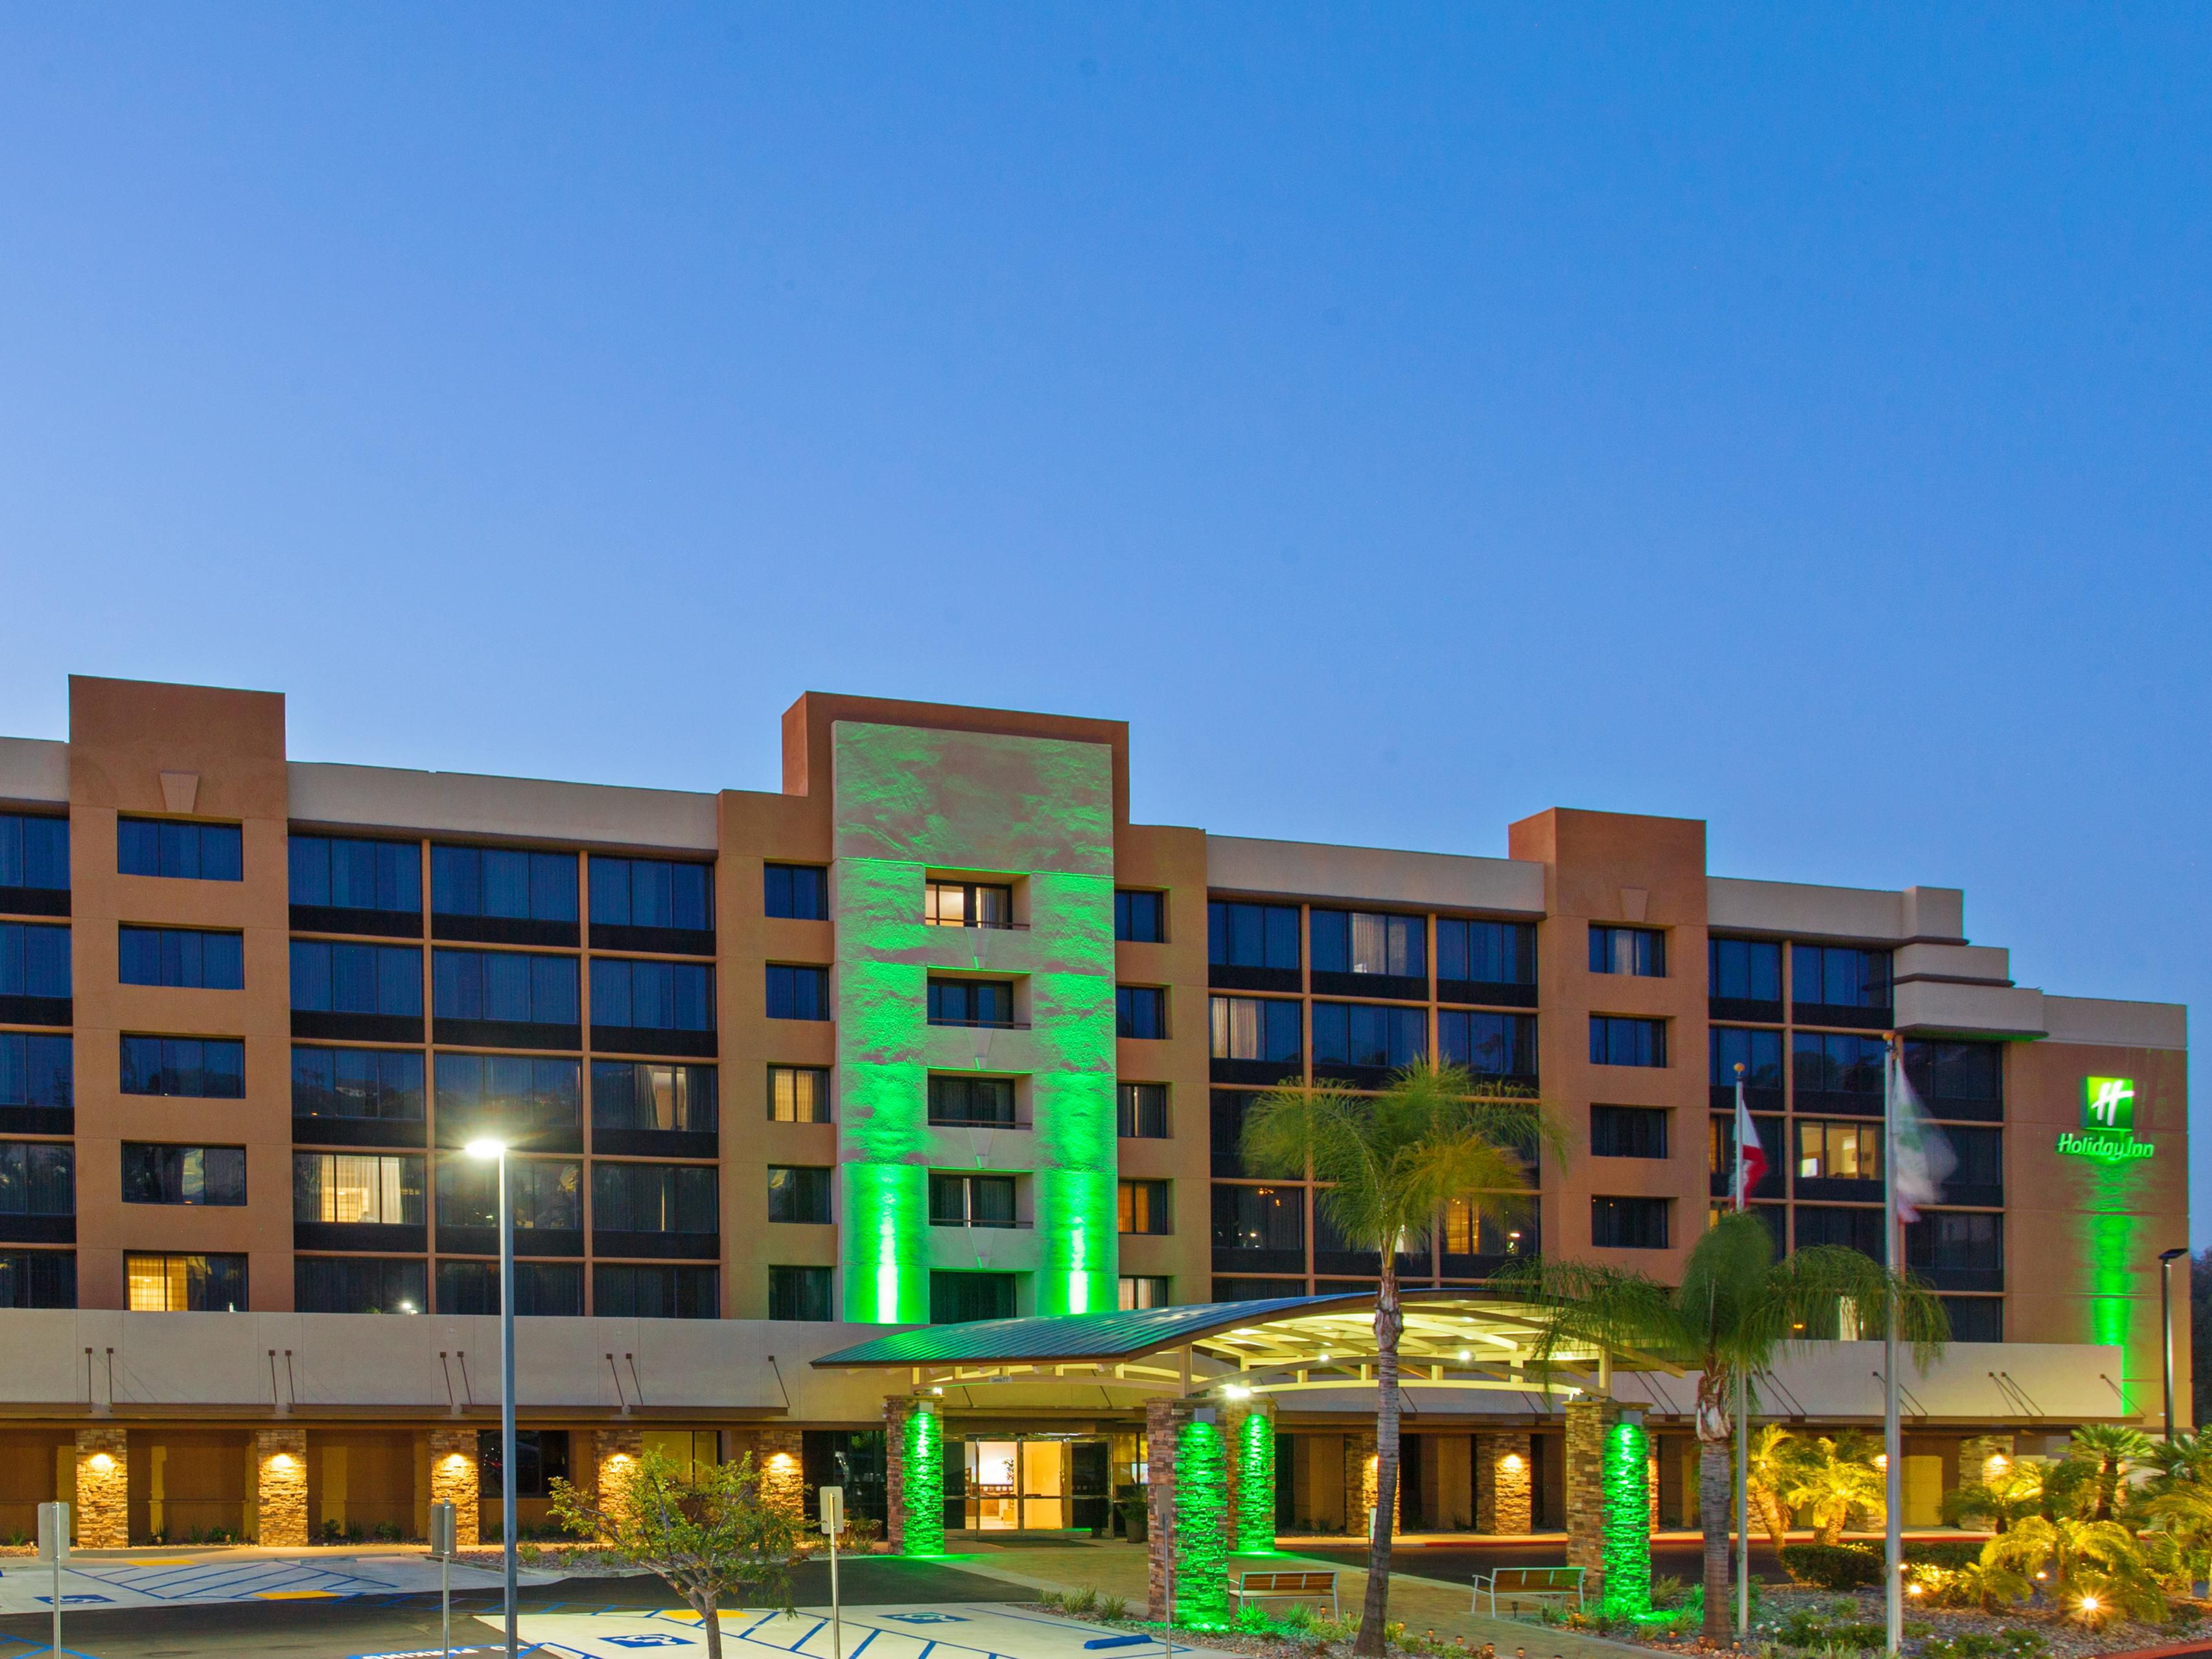 Hotel in Diamond Bar, California - Holiday Inn